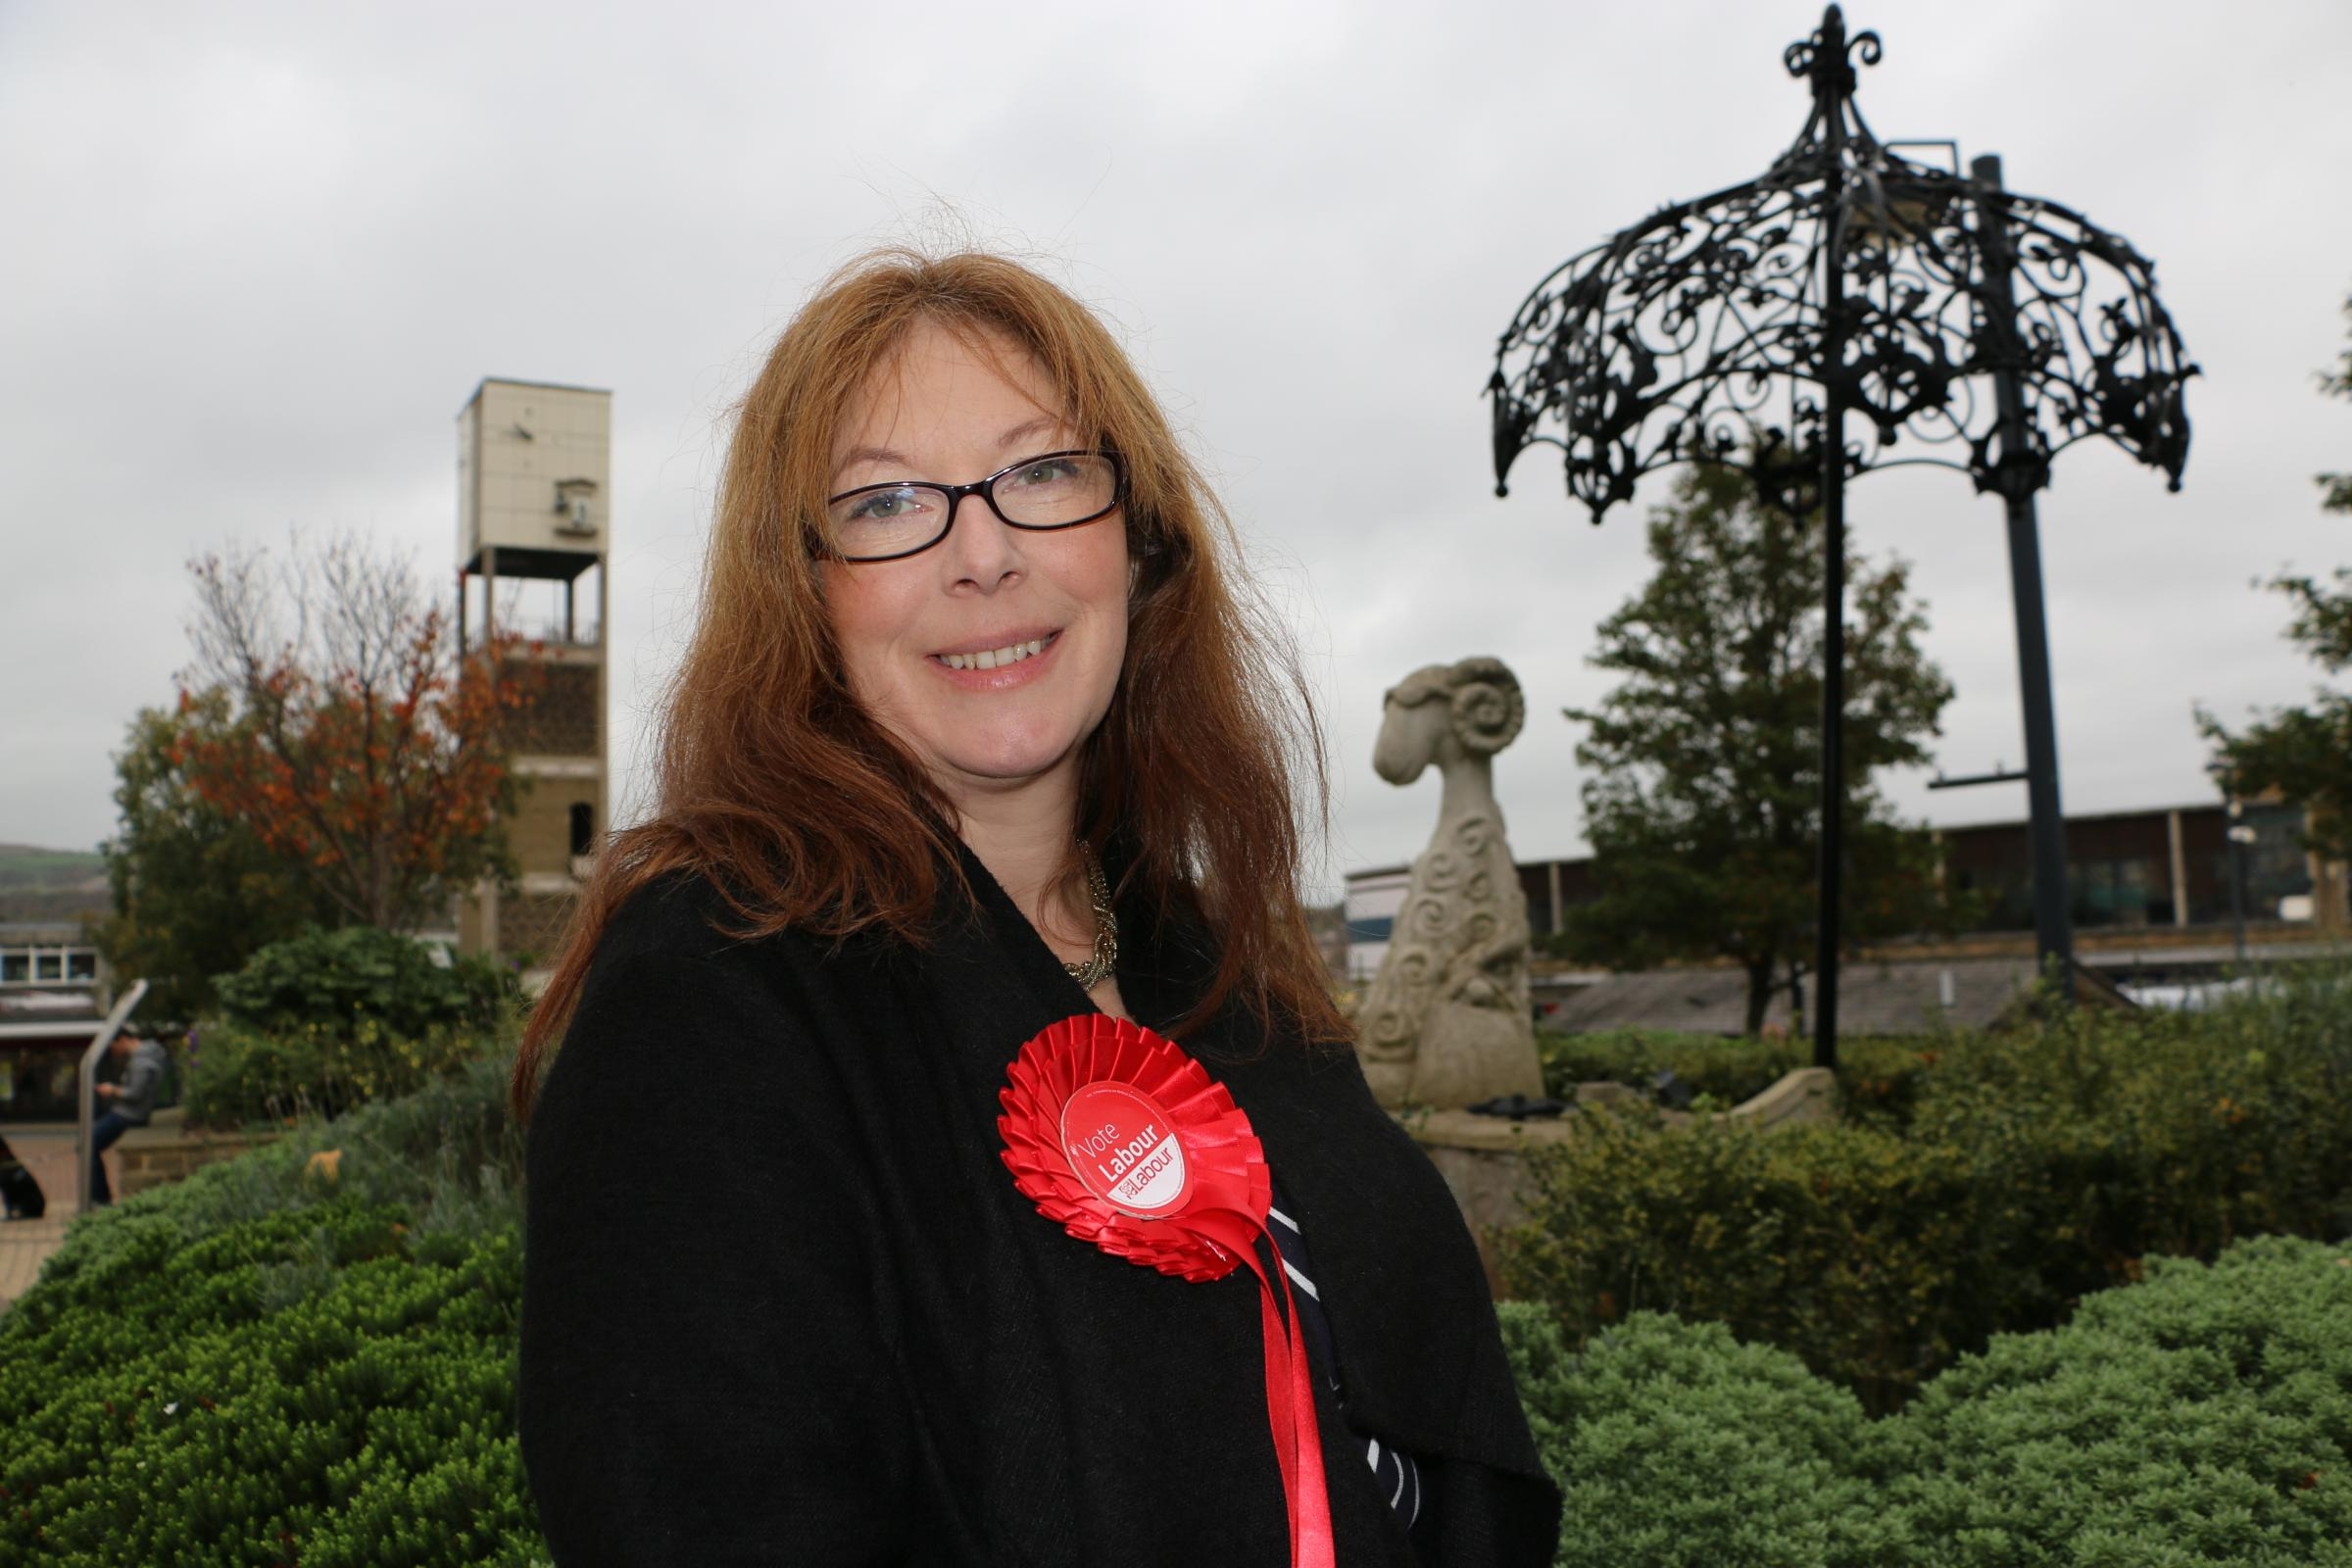 Jo Pike, new Labour candidate for Shipley